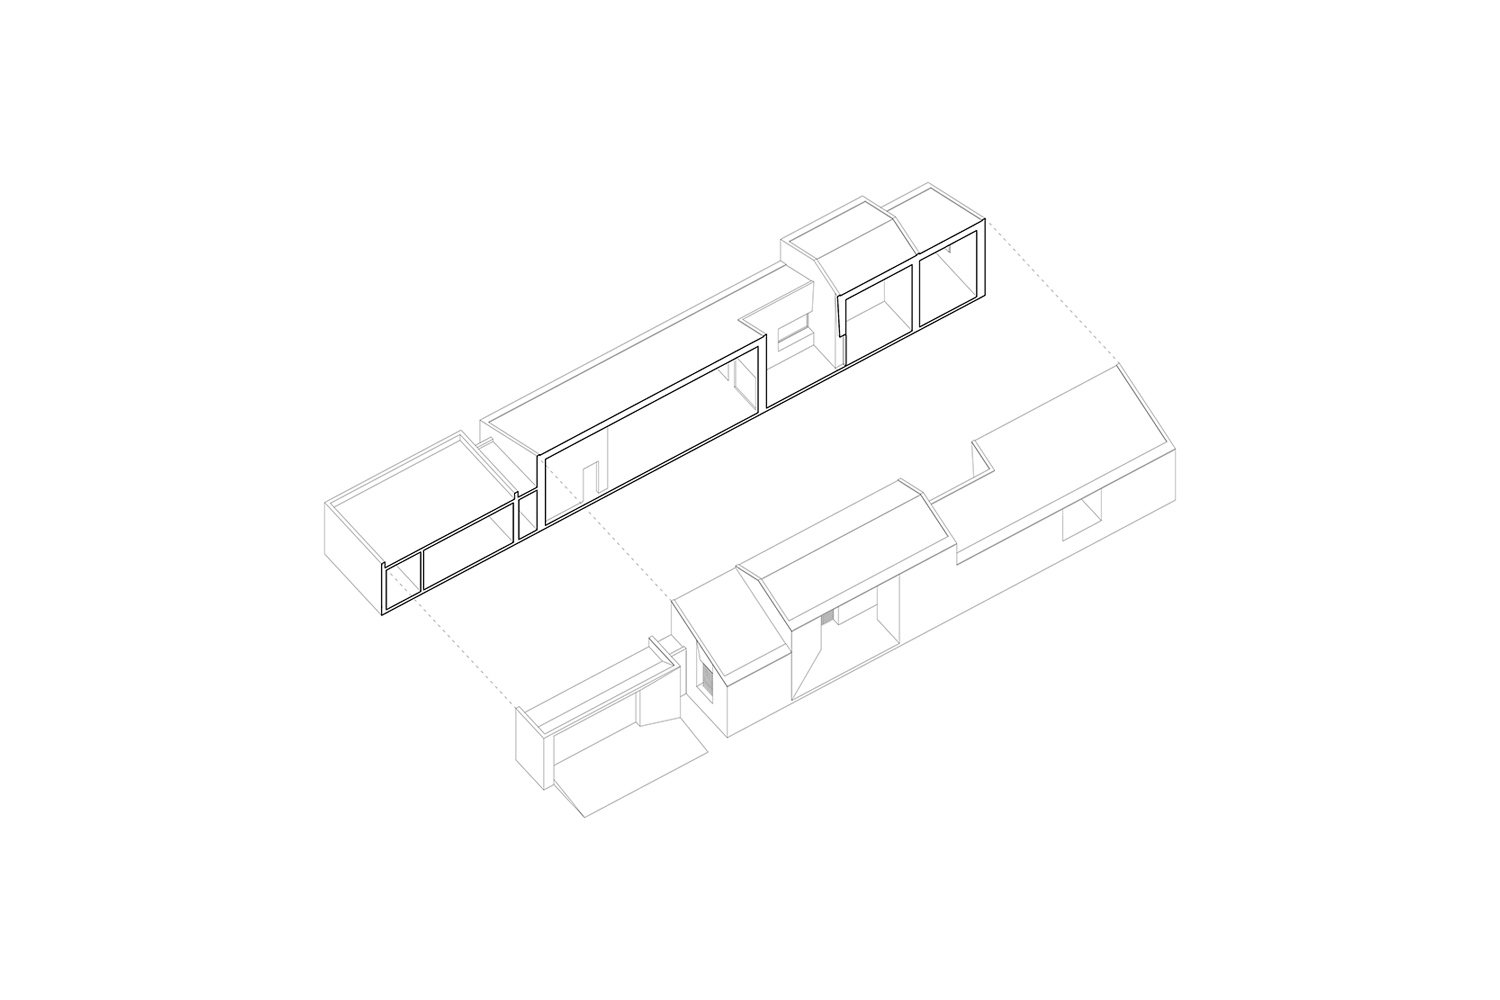 Exploded isometric view }